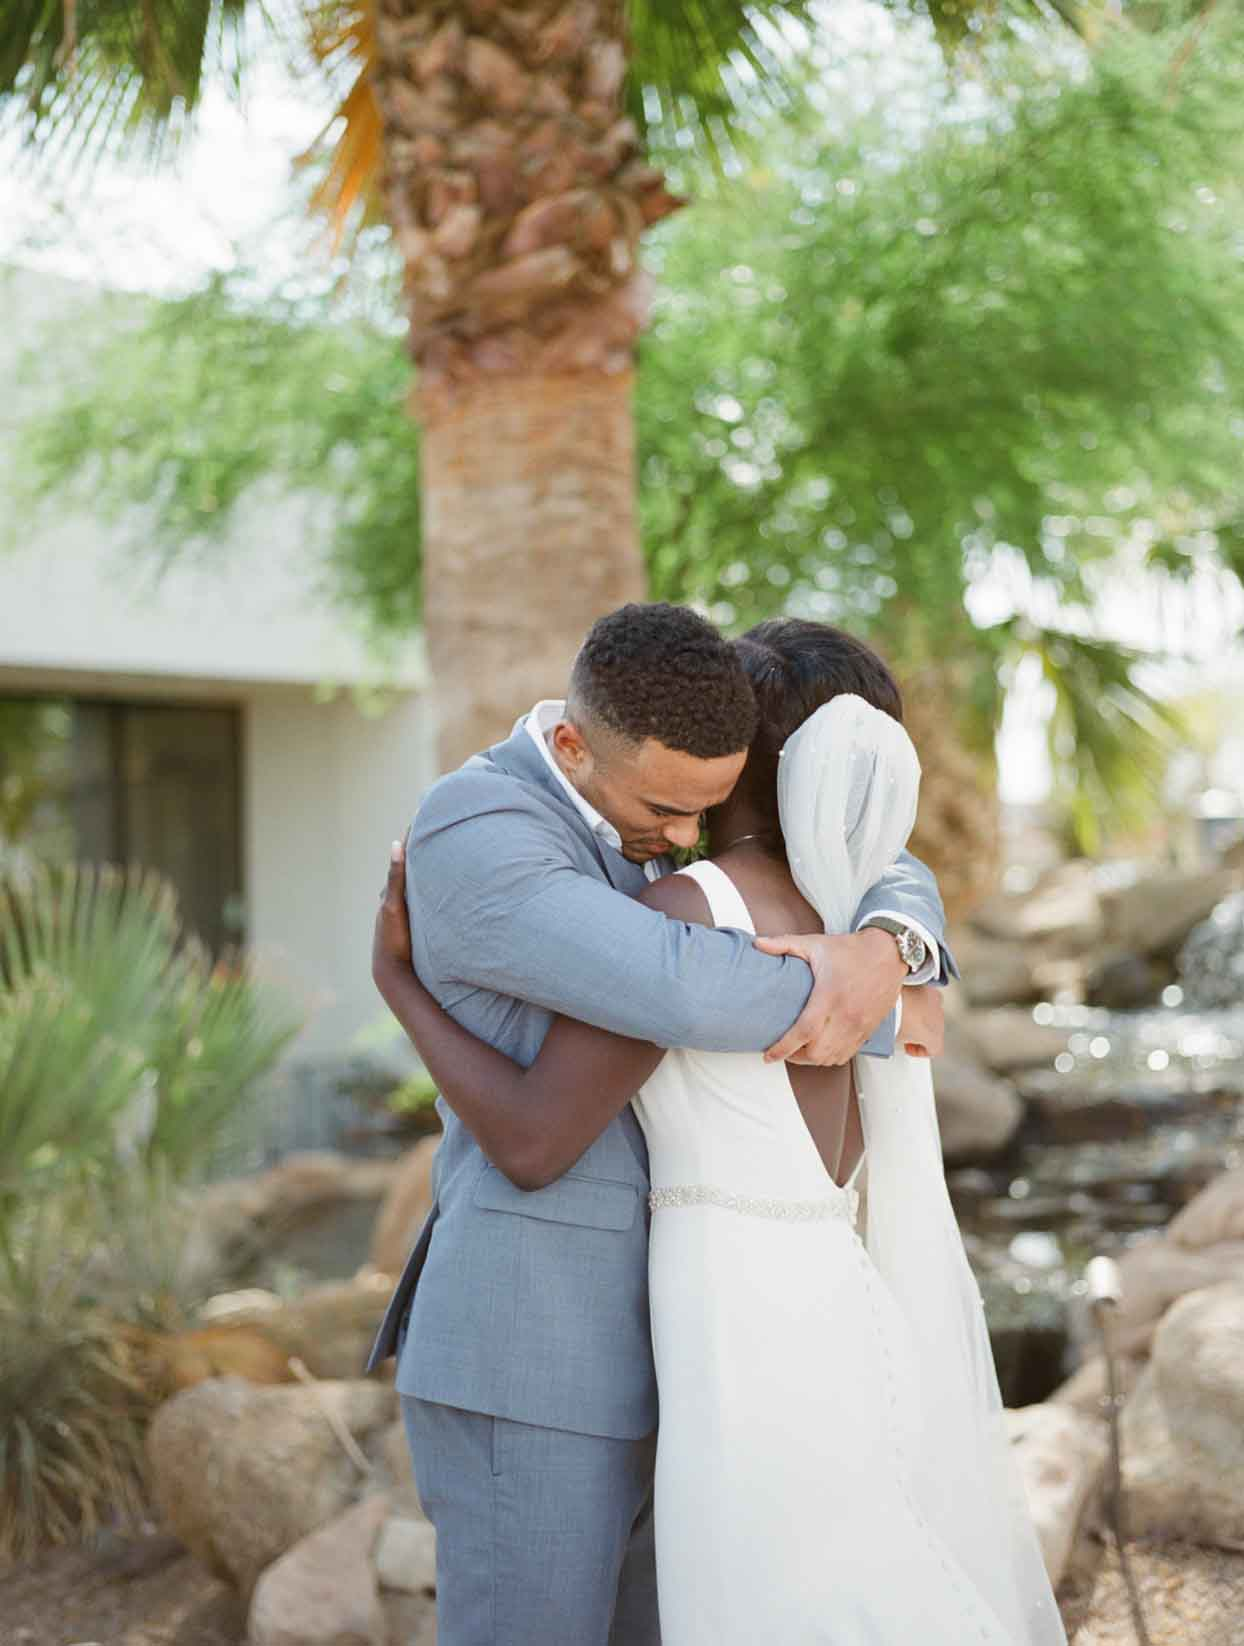 The Couple Opted For a Combo First Look and Private Vow Ceremony